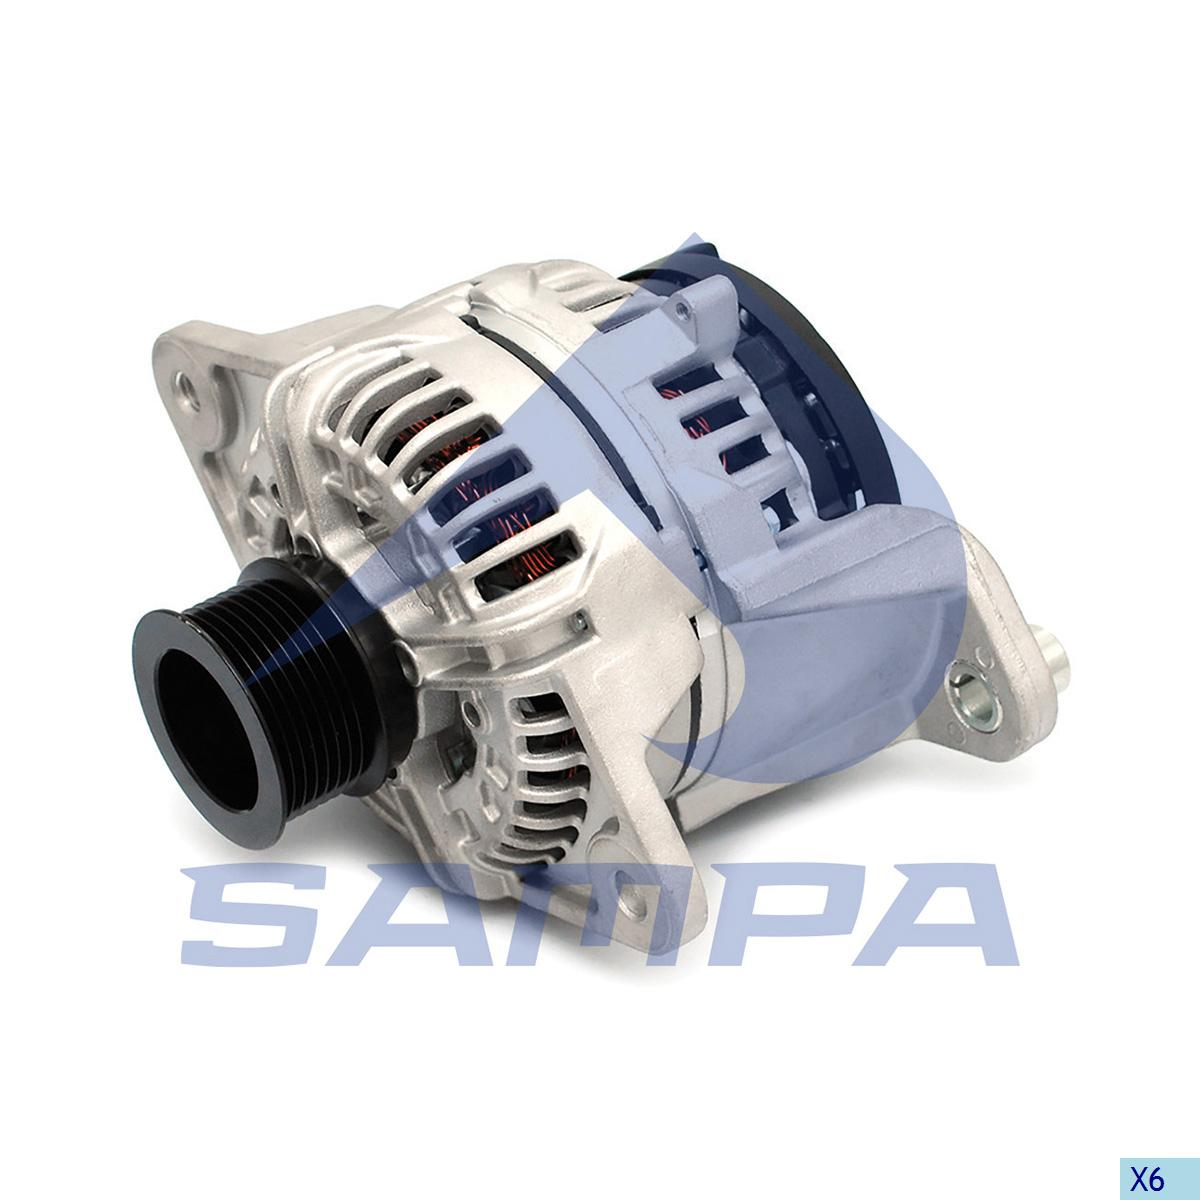 Alternator, Volvo, Electric System